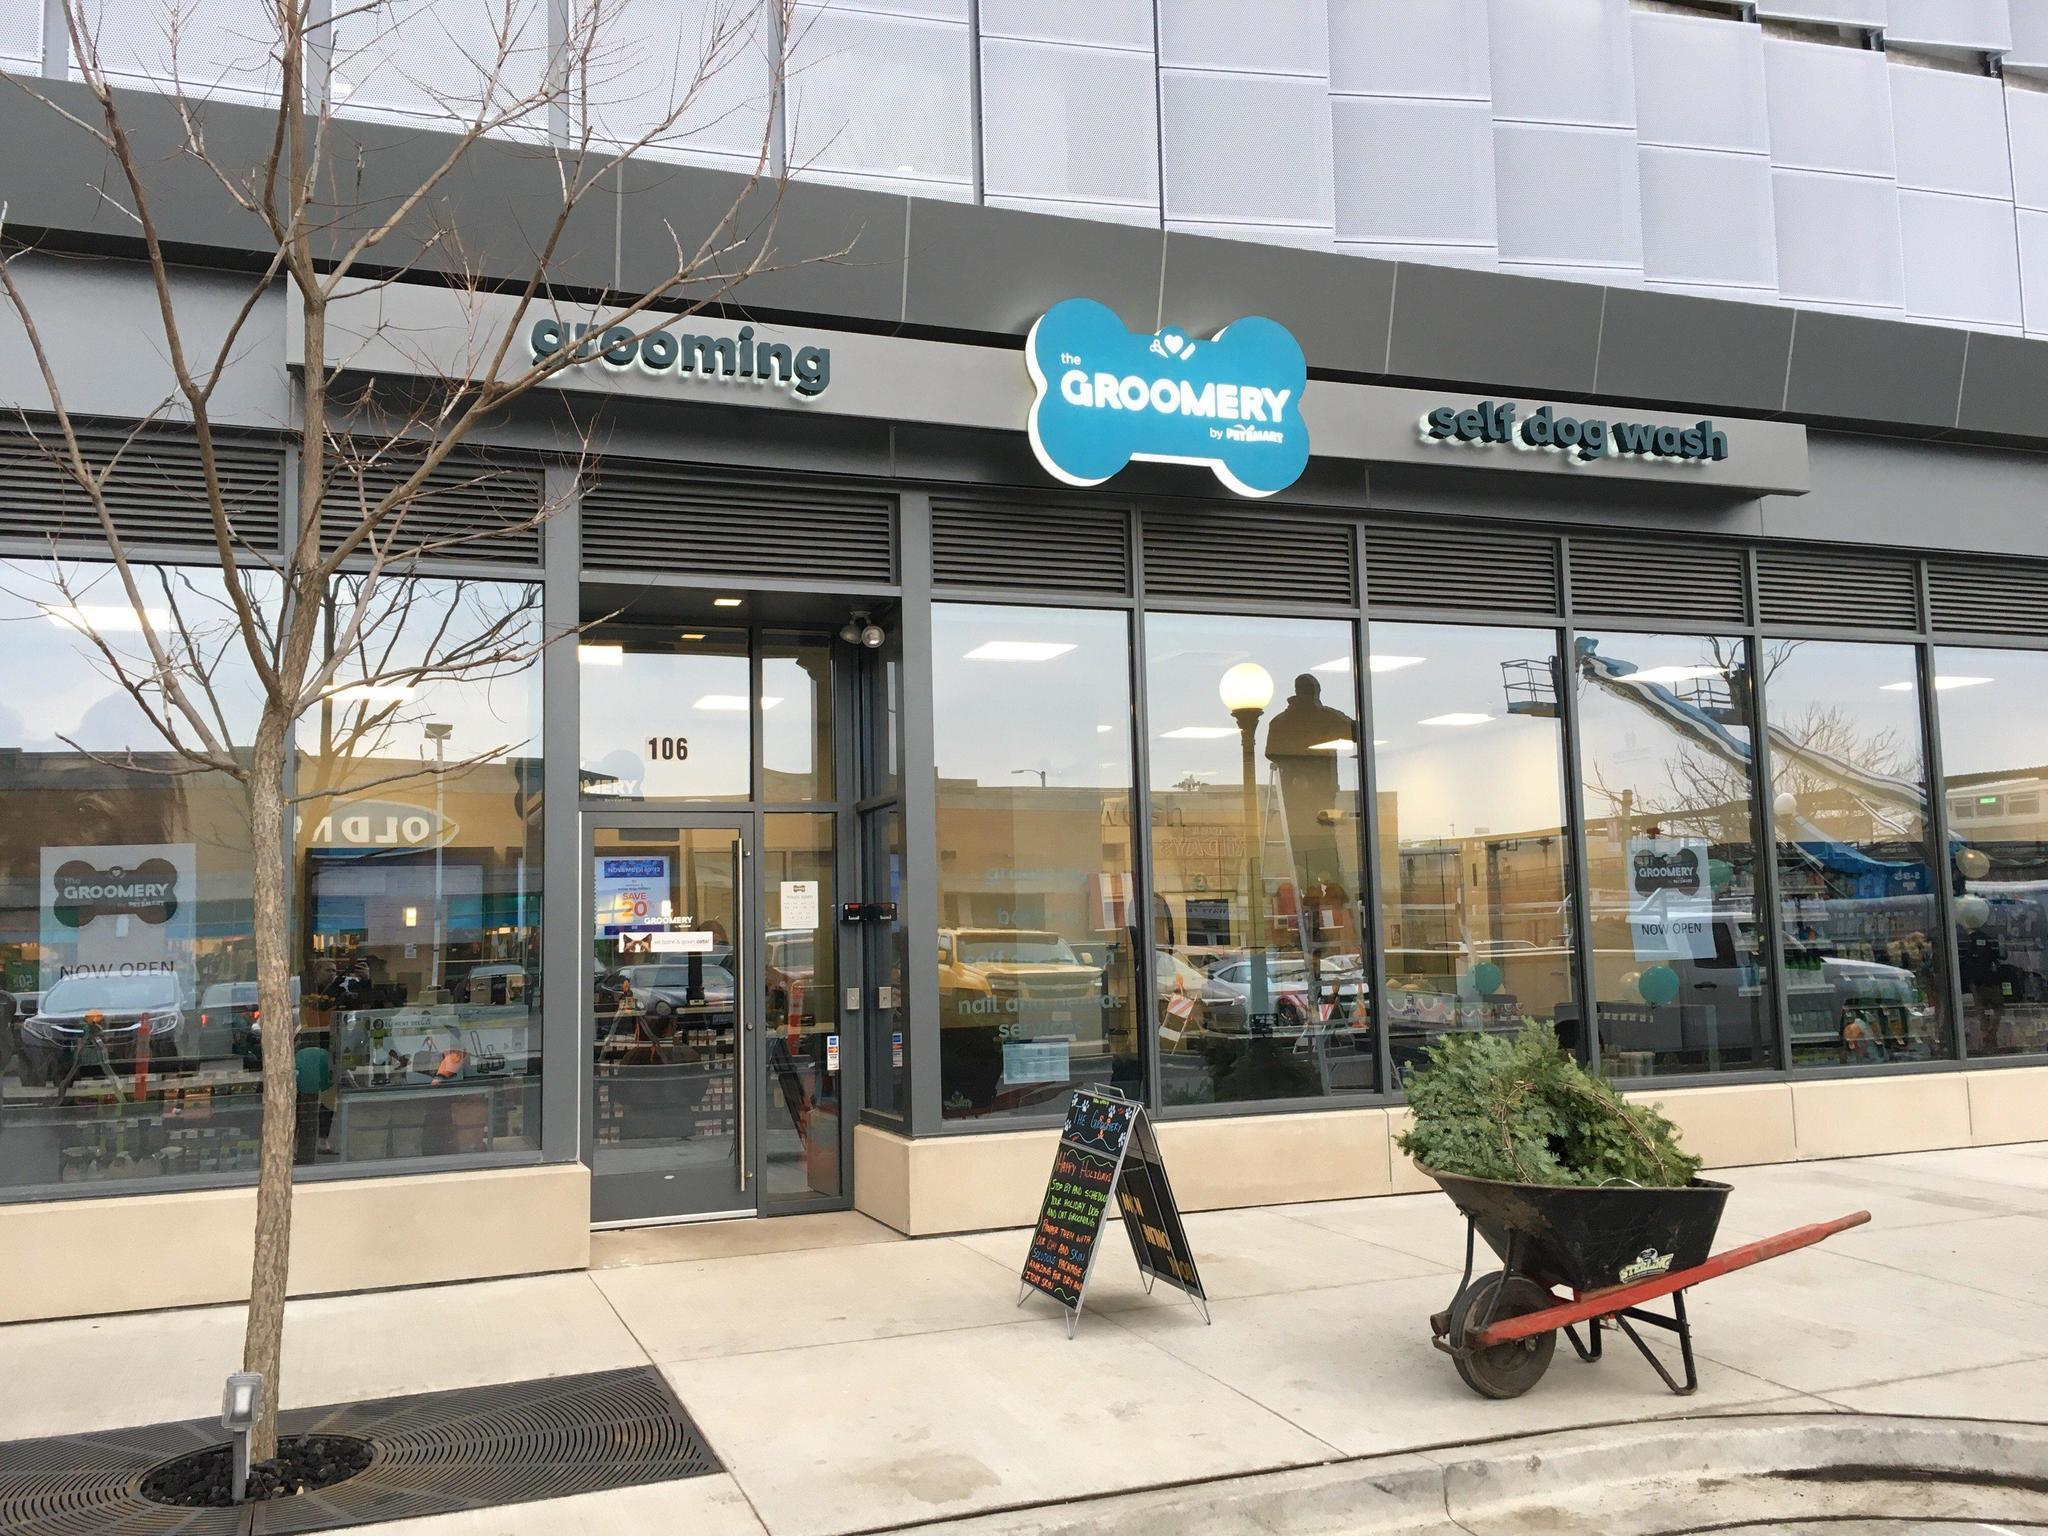 PetSmarts First Groomery Location Opens At Emerson Building In Oak Park